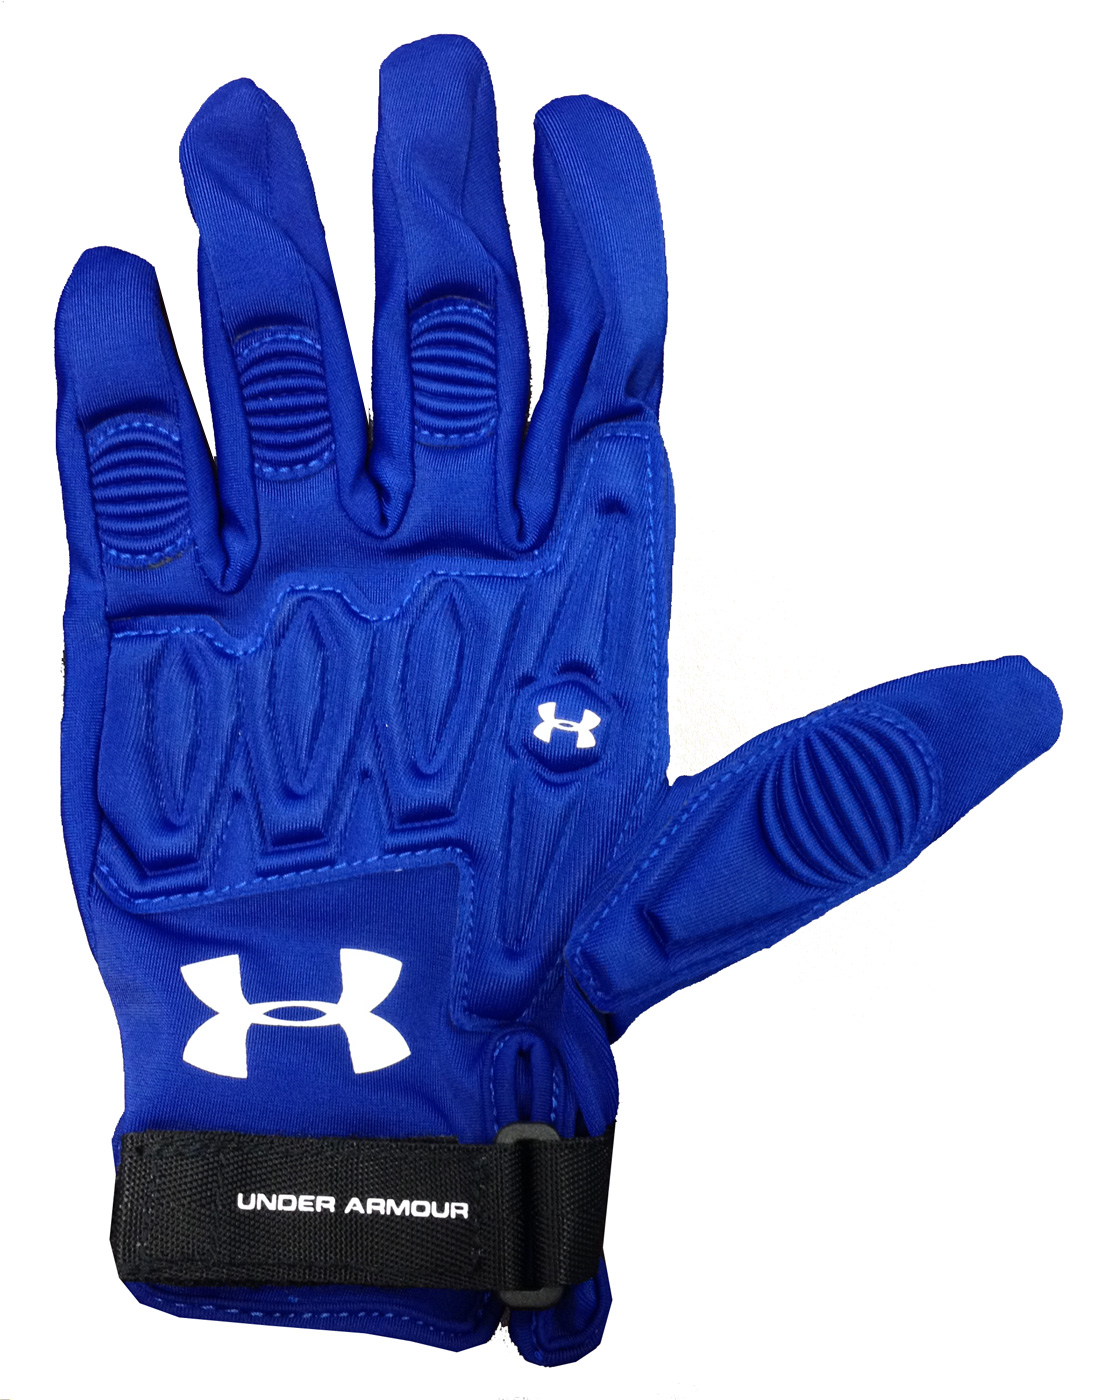 Under Armour Women S Illusion Lacrosse Field Gloves